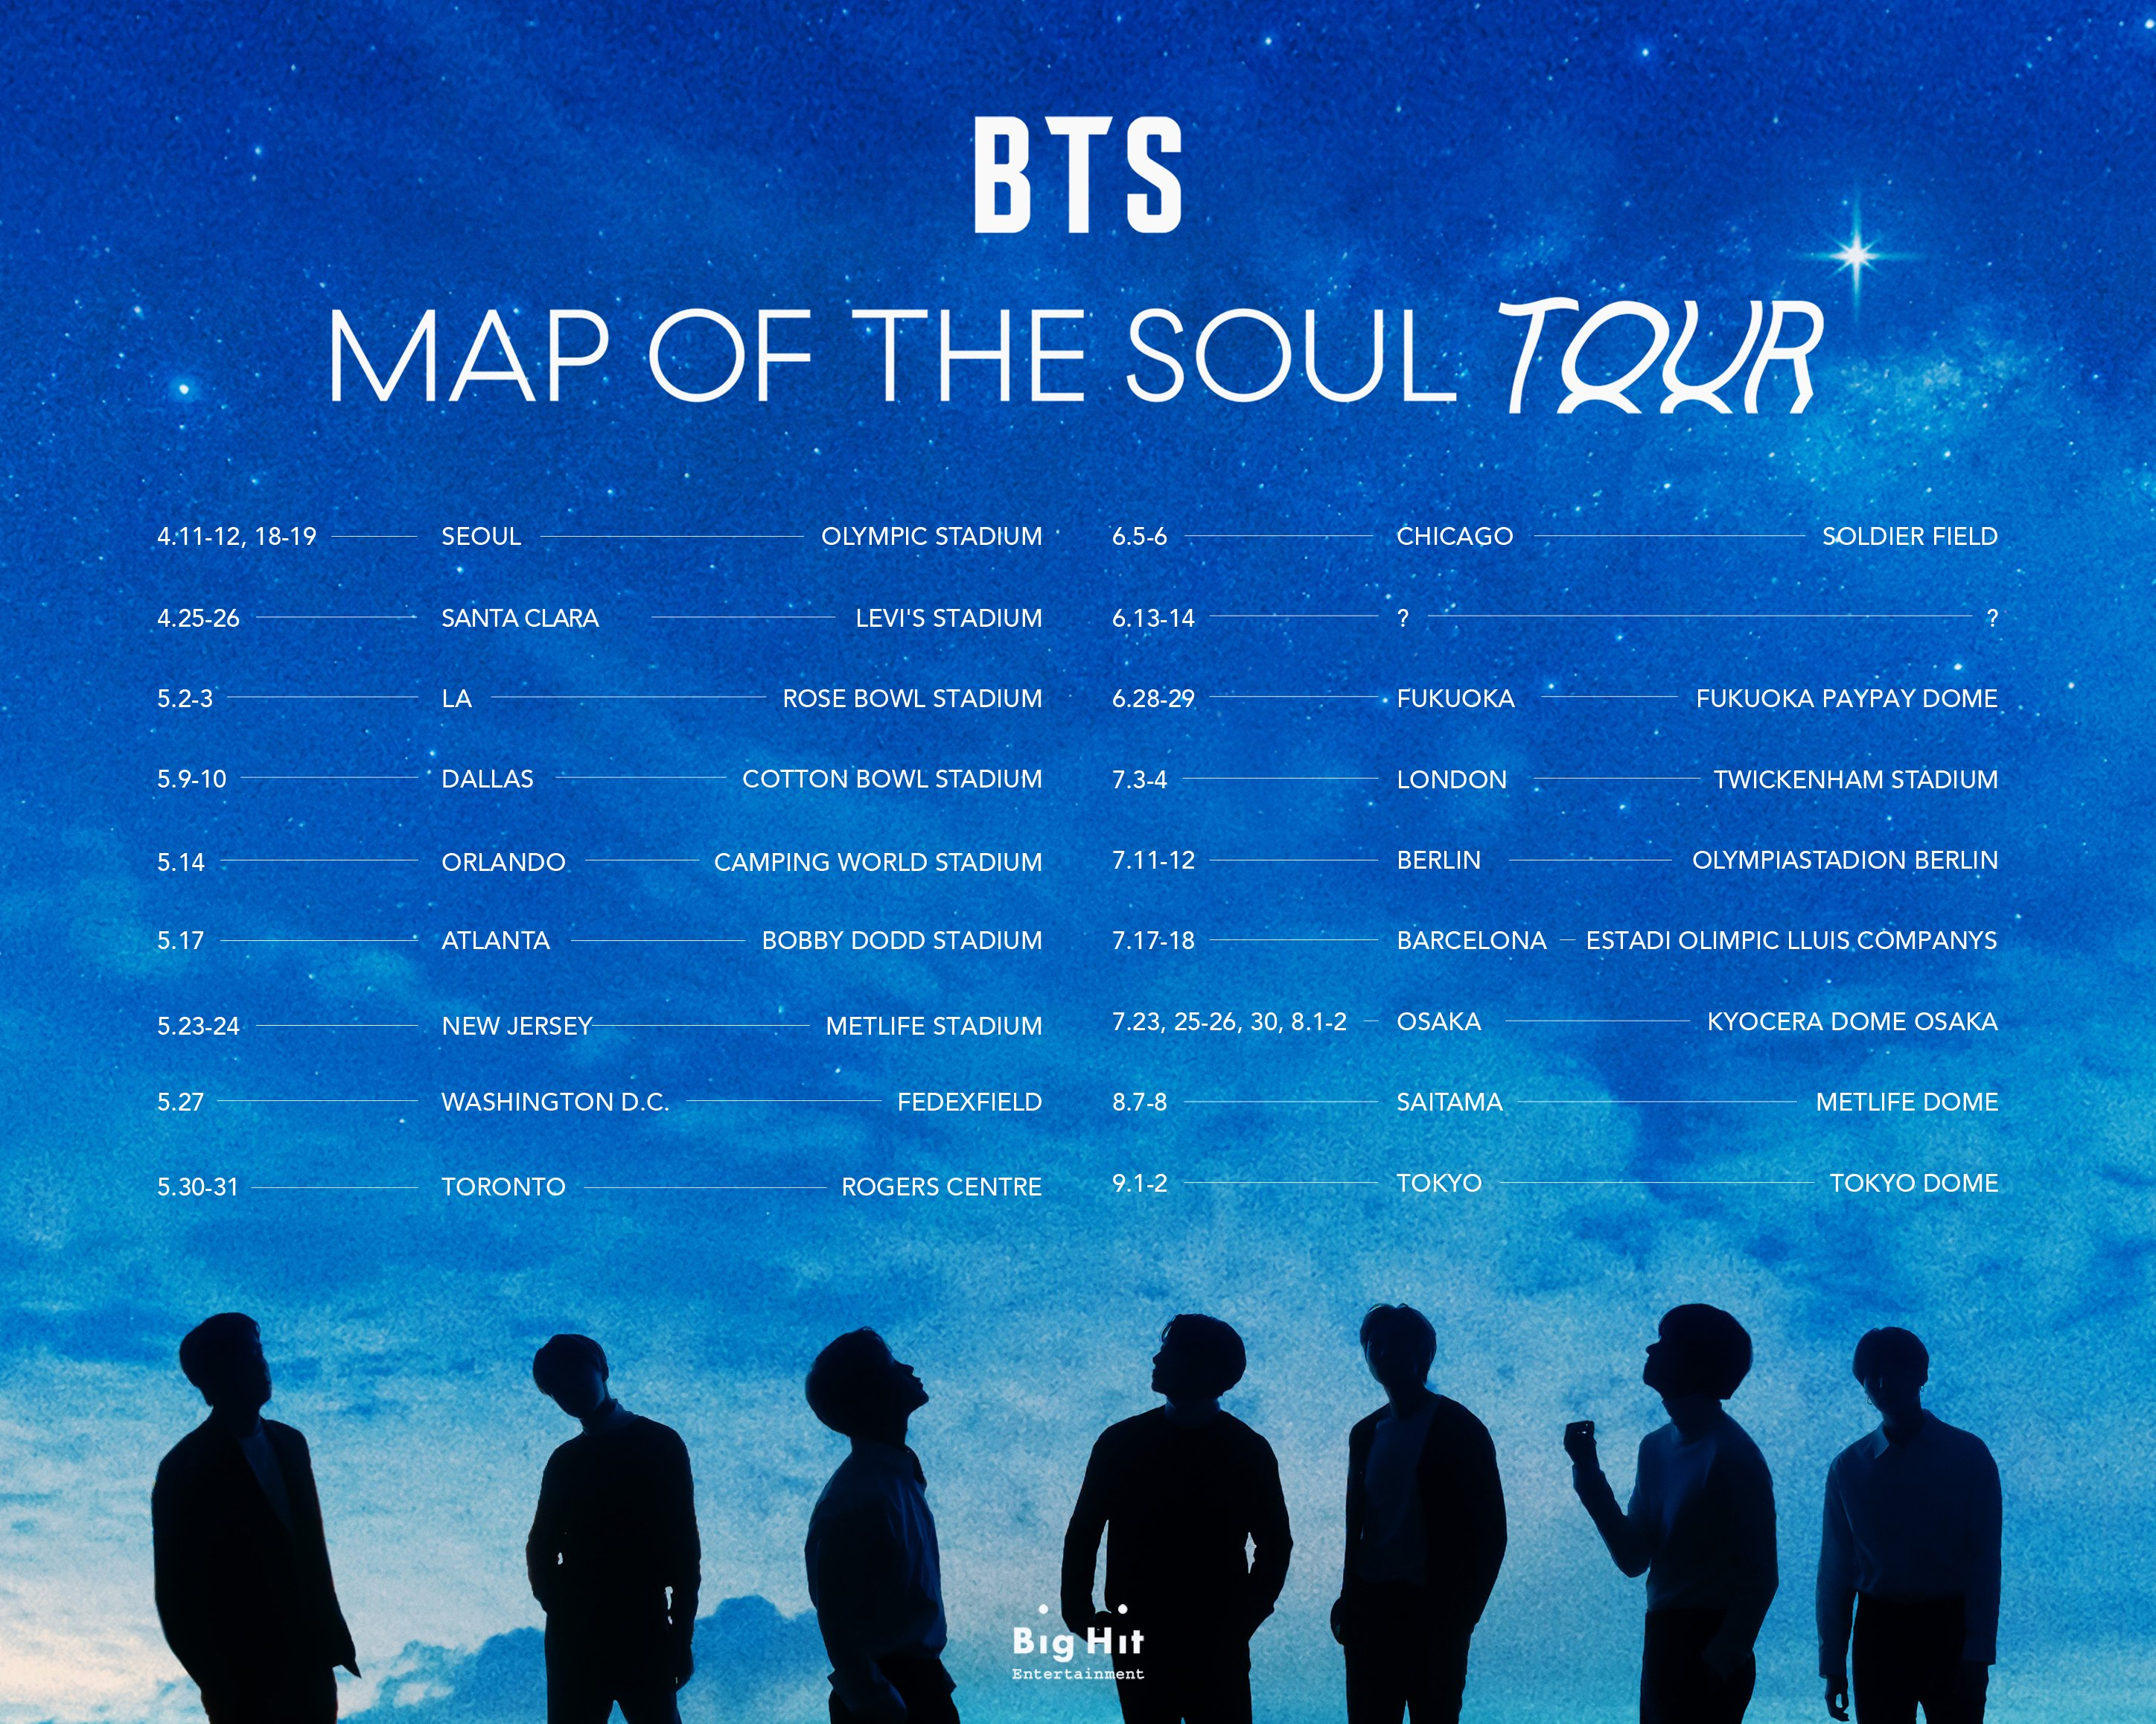 Map of the Soul Tour